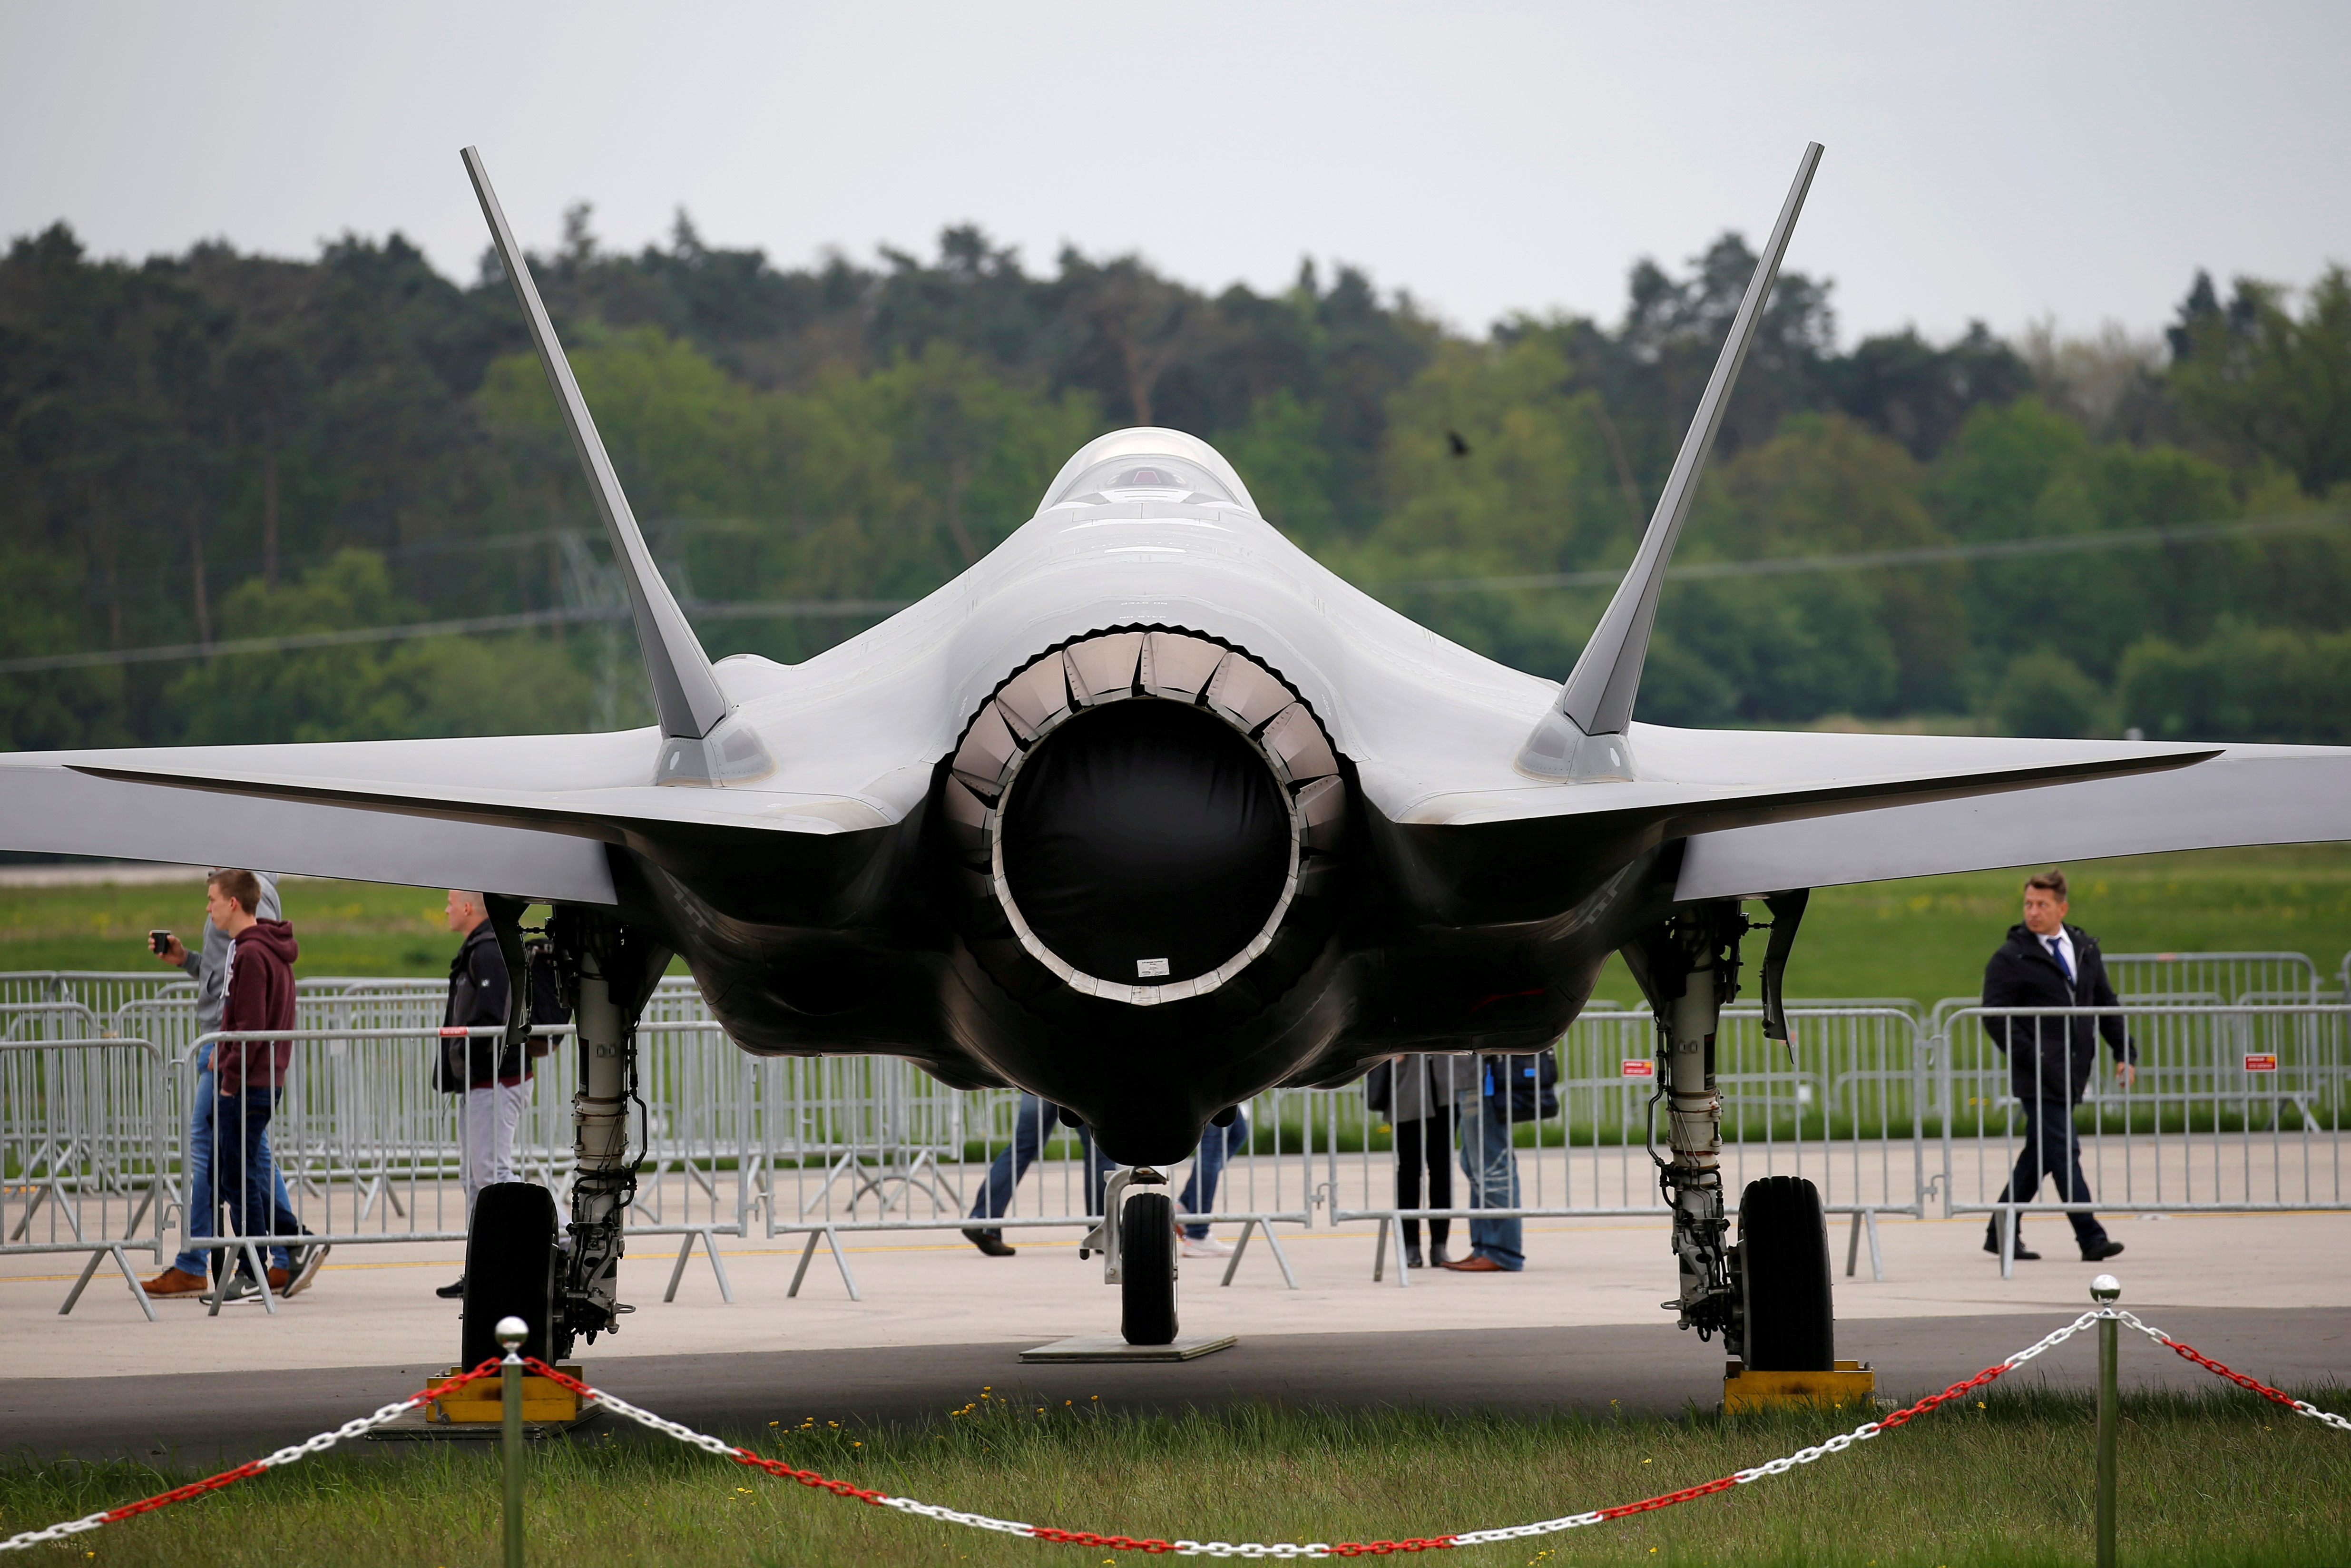 A Lockheed Martin F-35 aircraft is seen at the ILA Air Show in Berlin, Germany, April 25, 2018.    REUTERS/Axel Schmidt/File Photo